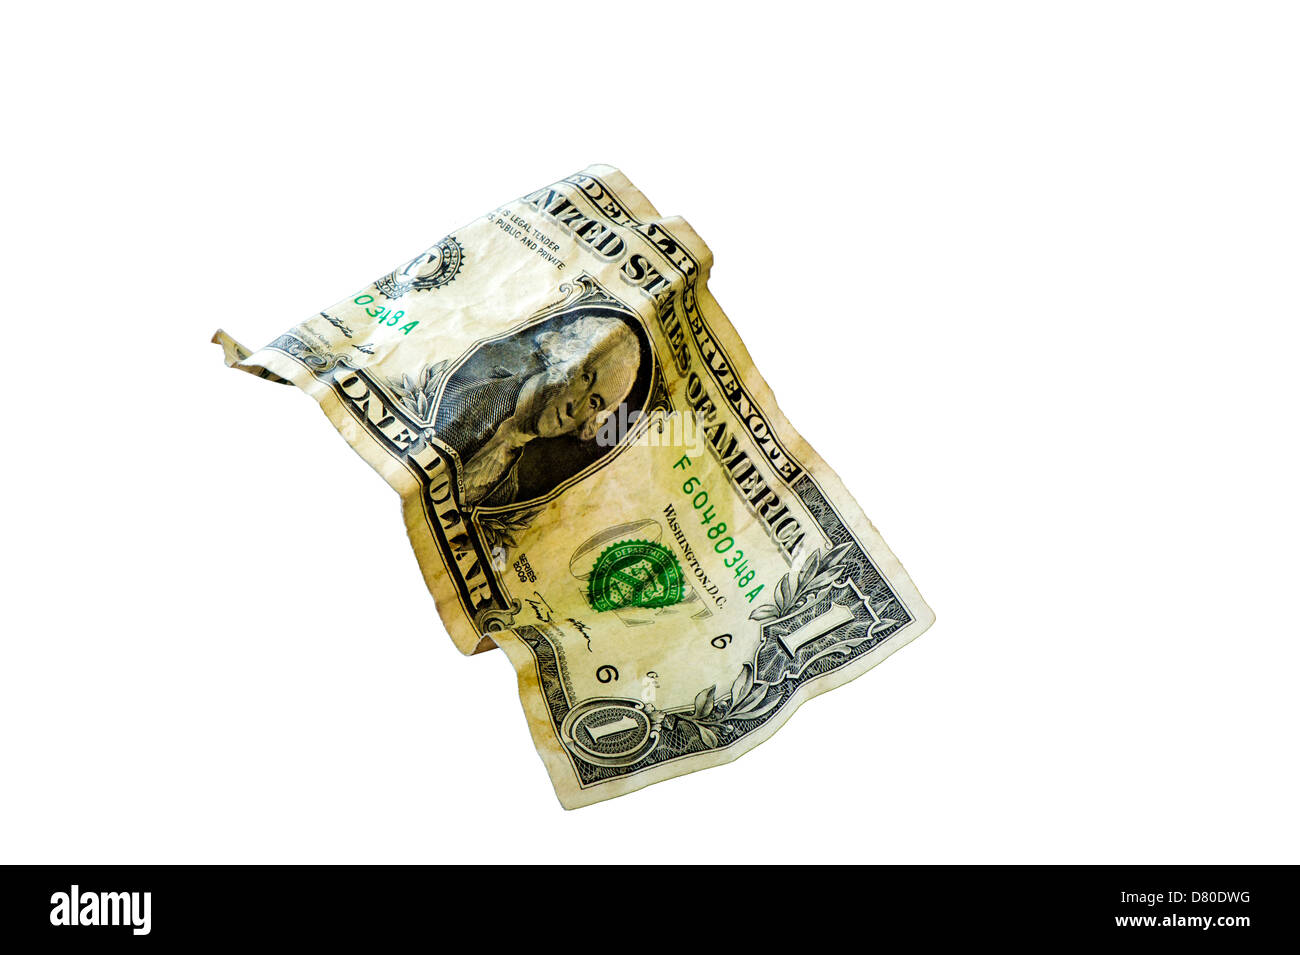 A single, crumpled dollar bill found on the floor of a super market. - Stock Image